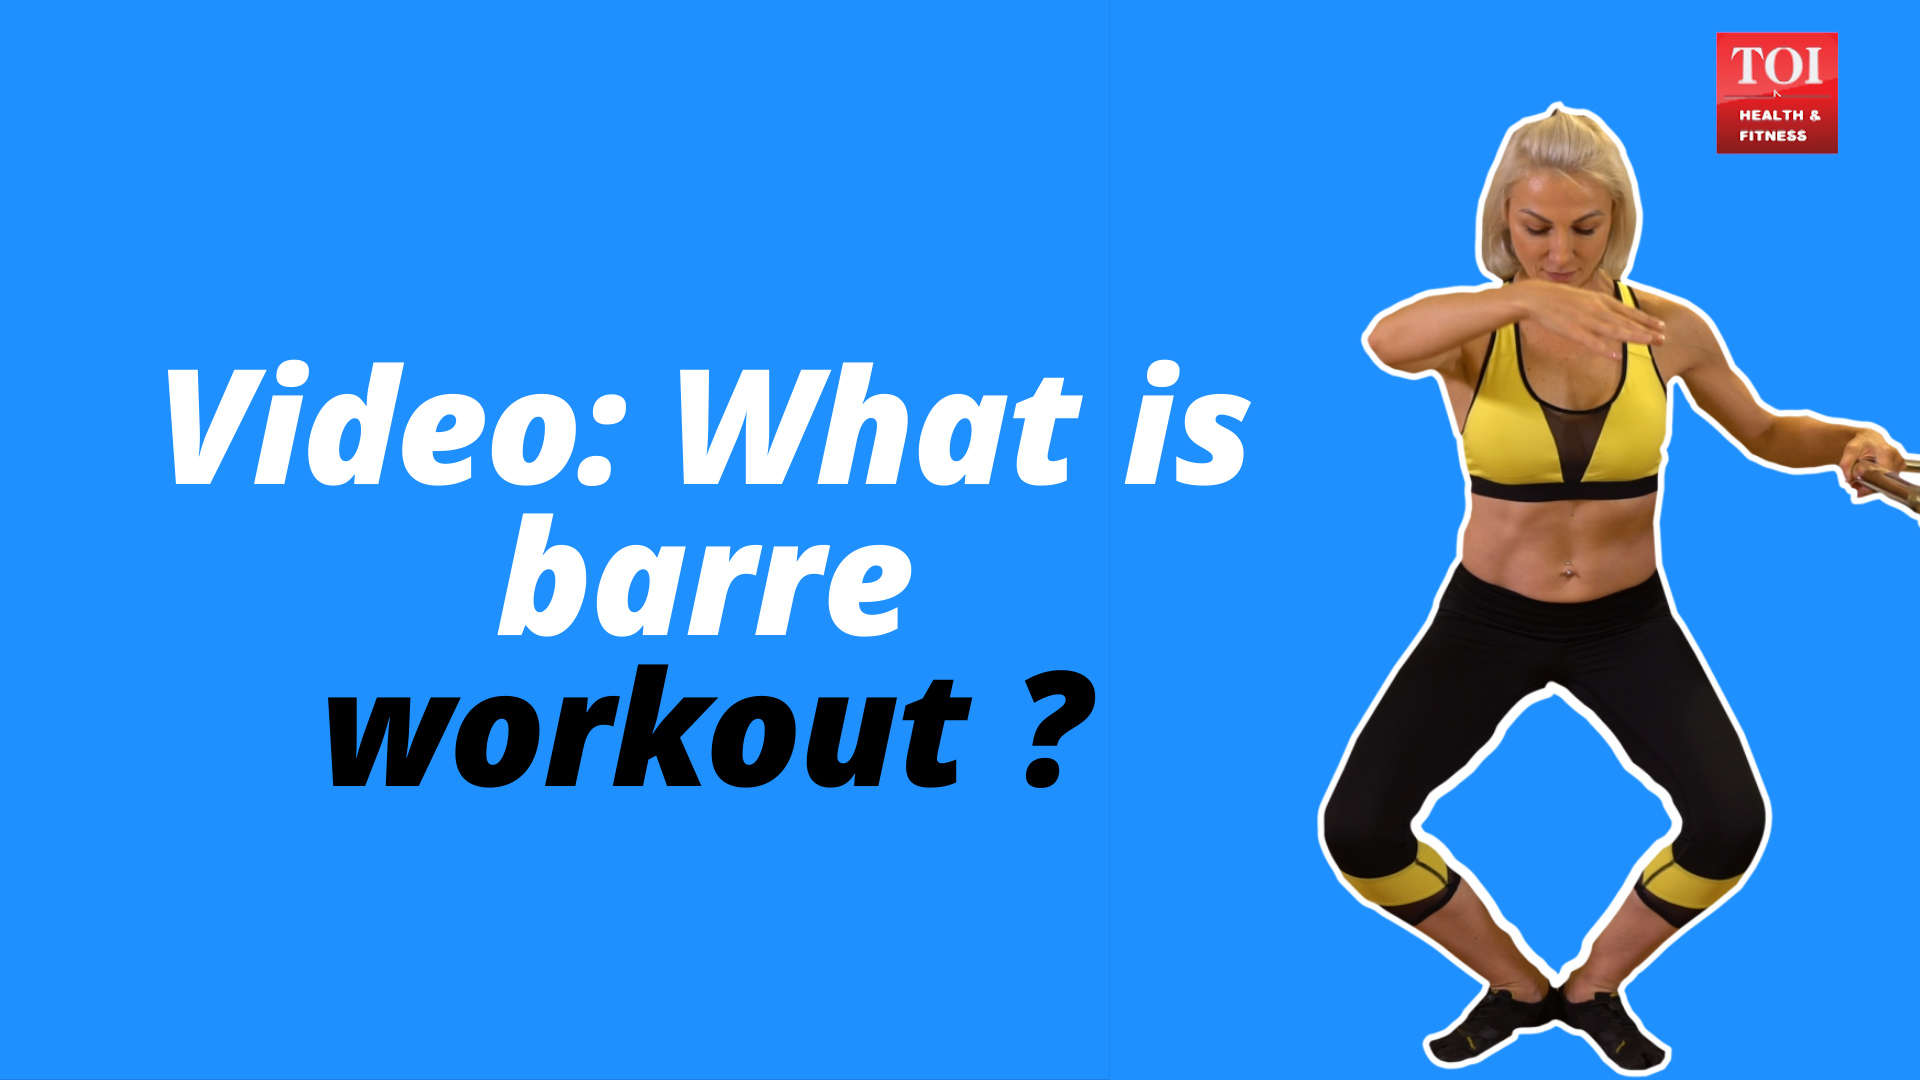 What is barre workout?